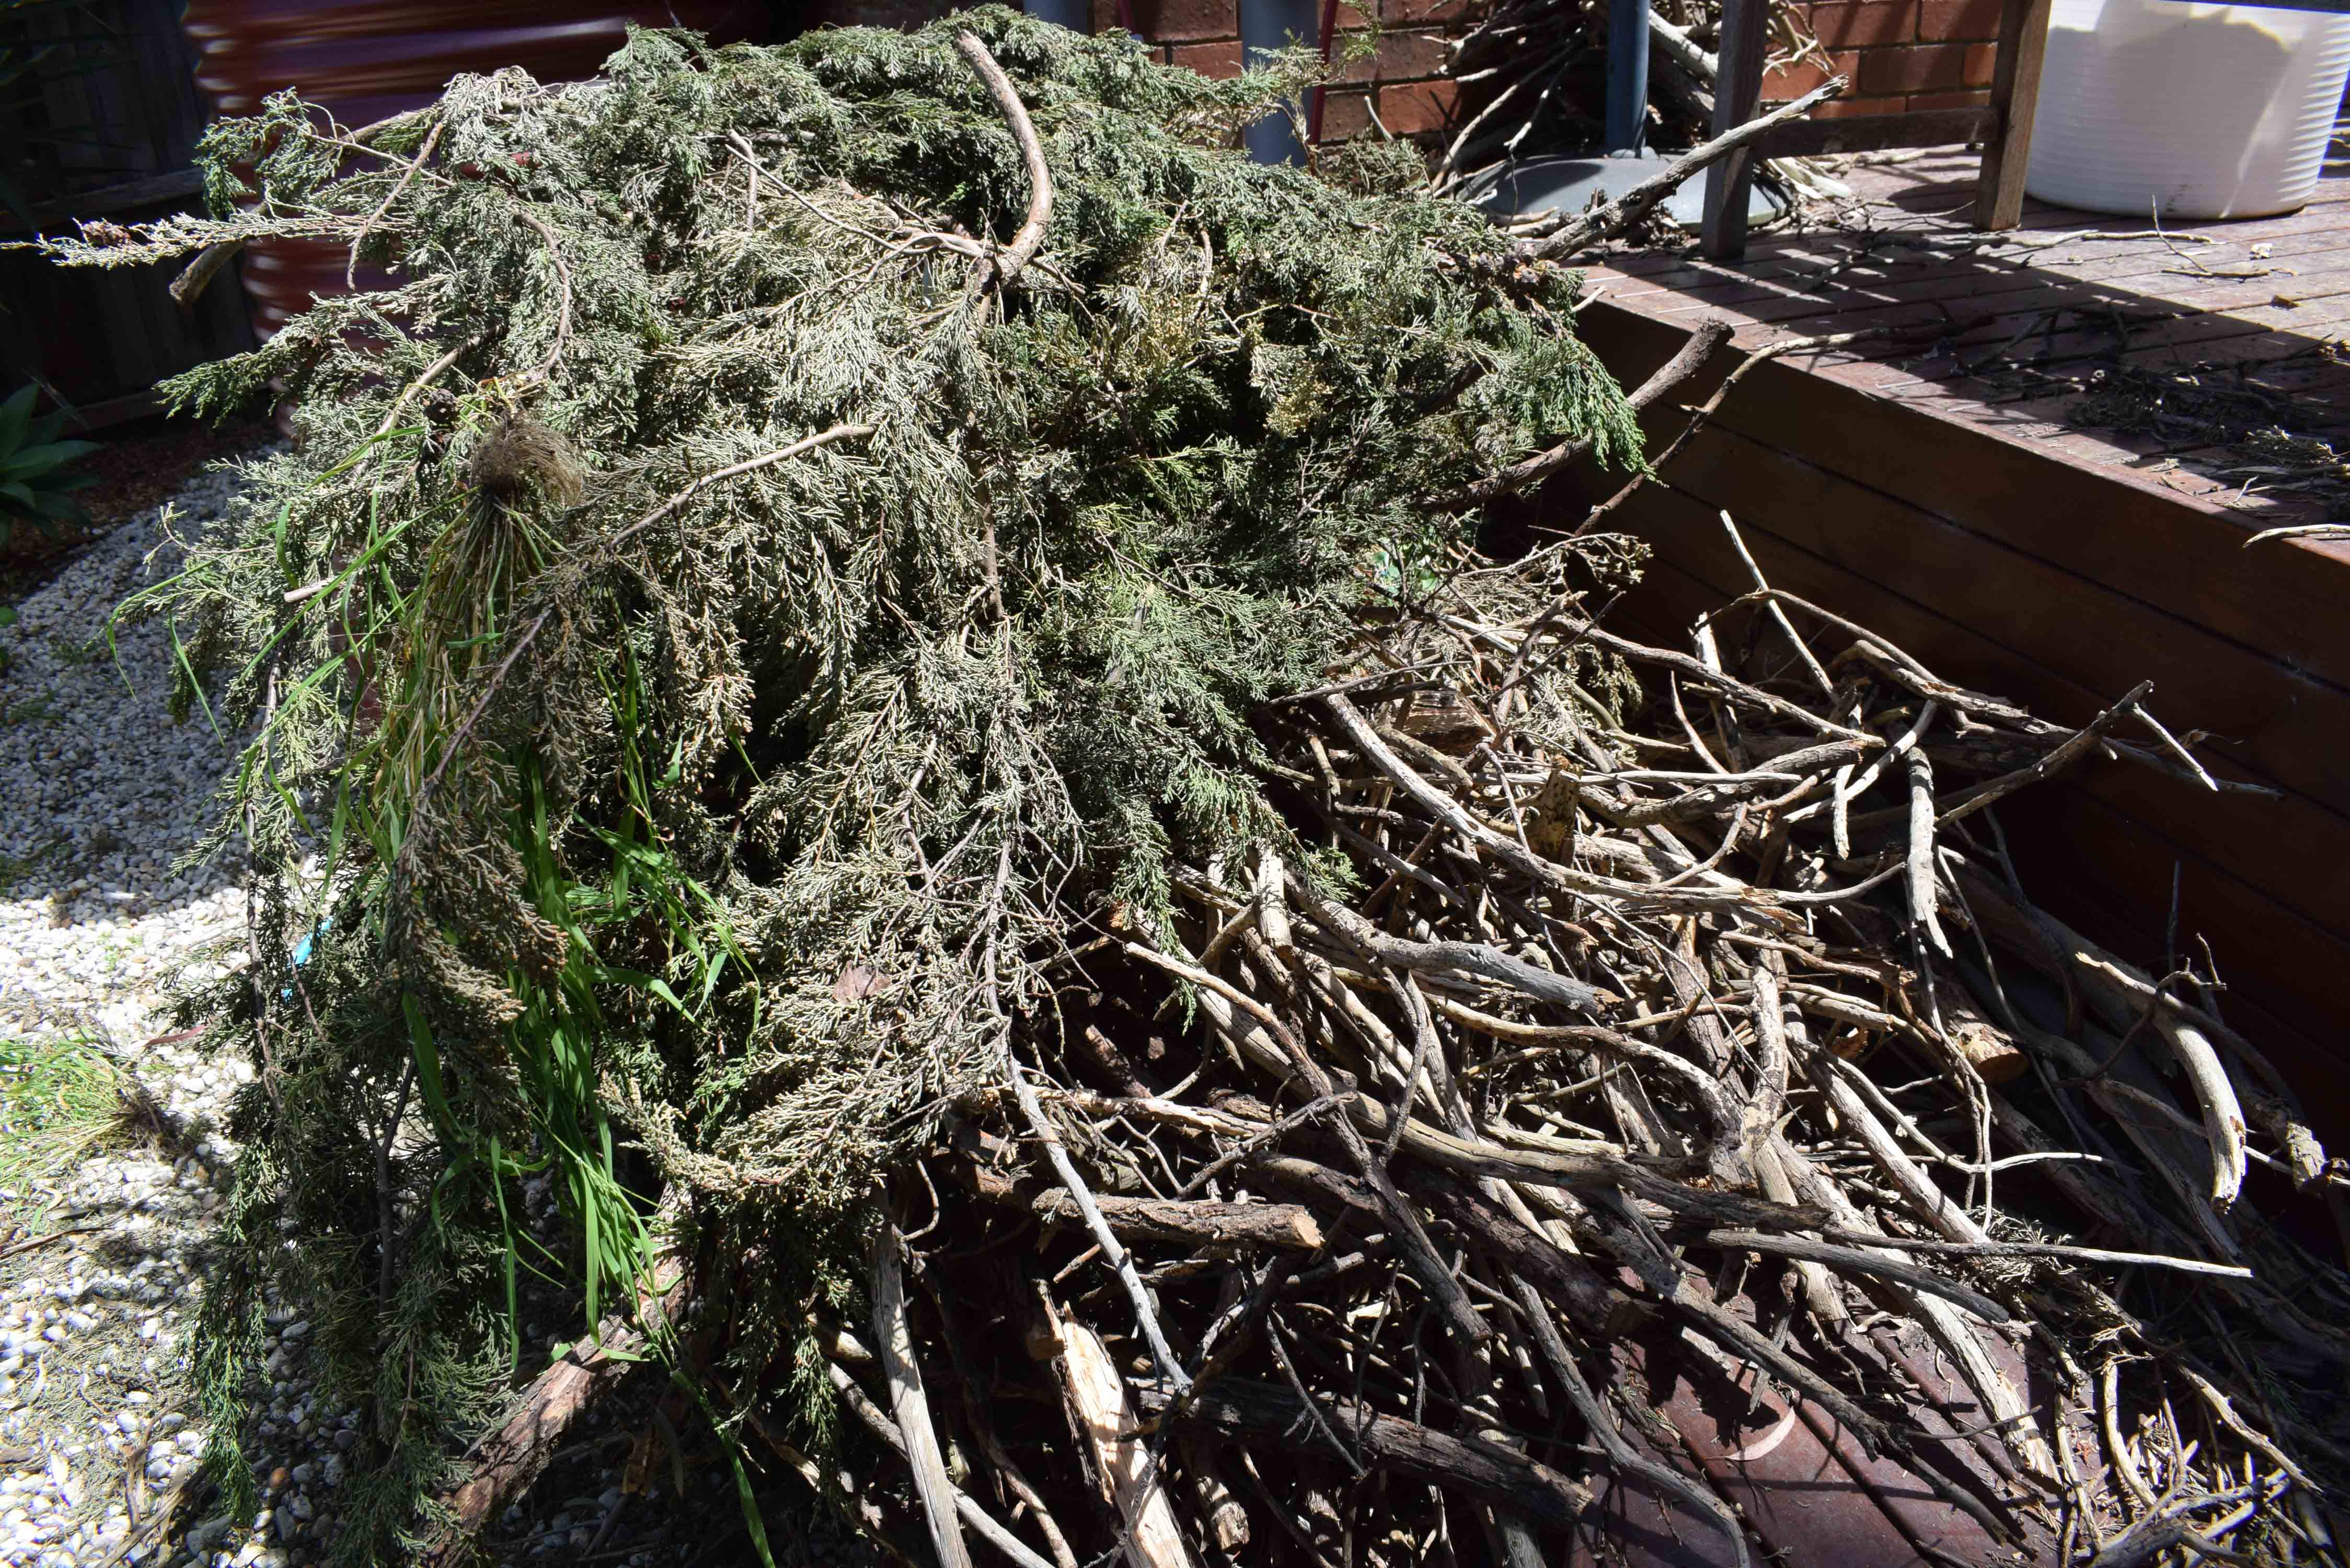 Pile of Sticks and Greens